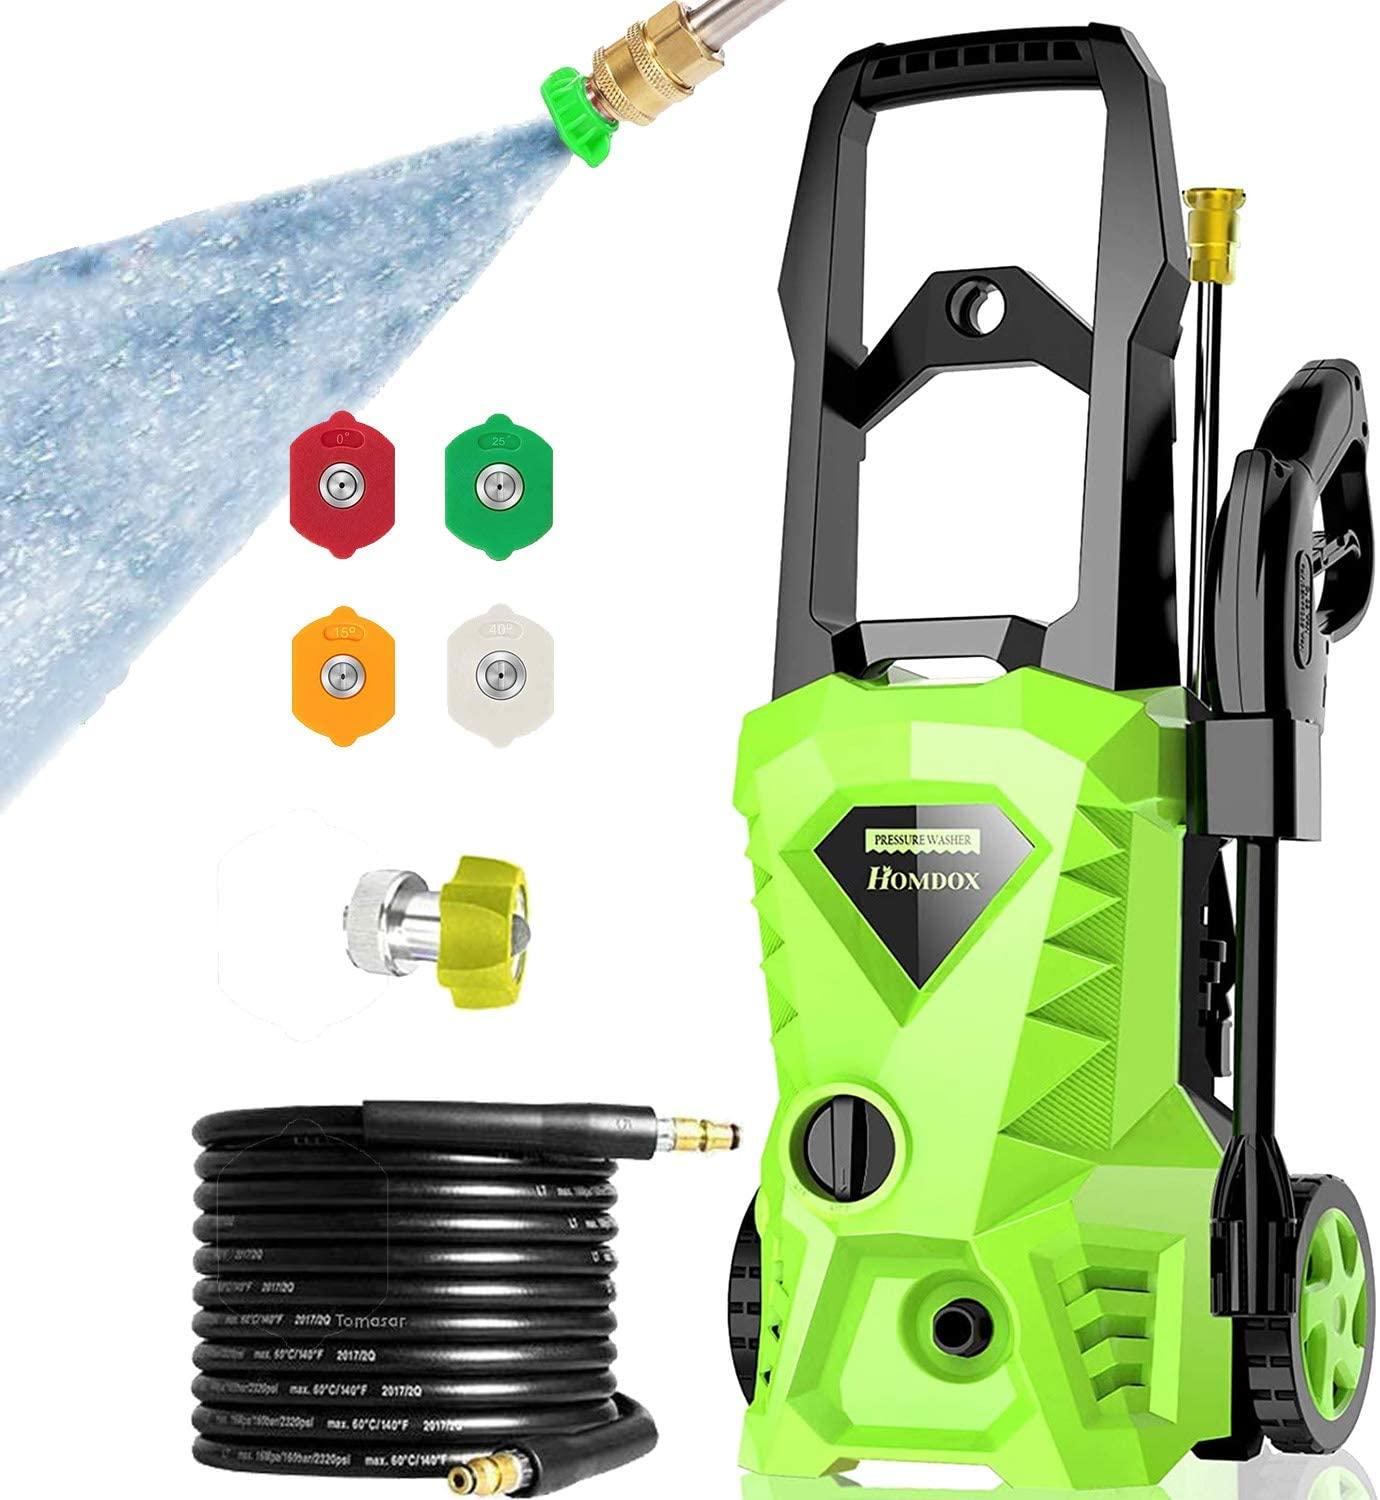 Max 57% OFF Homdox Electric Pressure Washer 2500 Gifts 1.5 PSI GPM Power